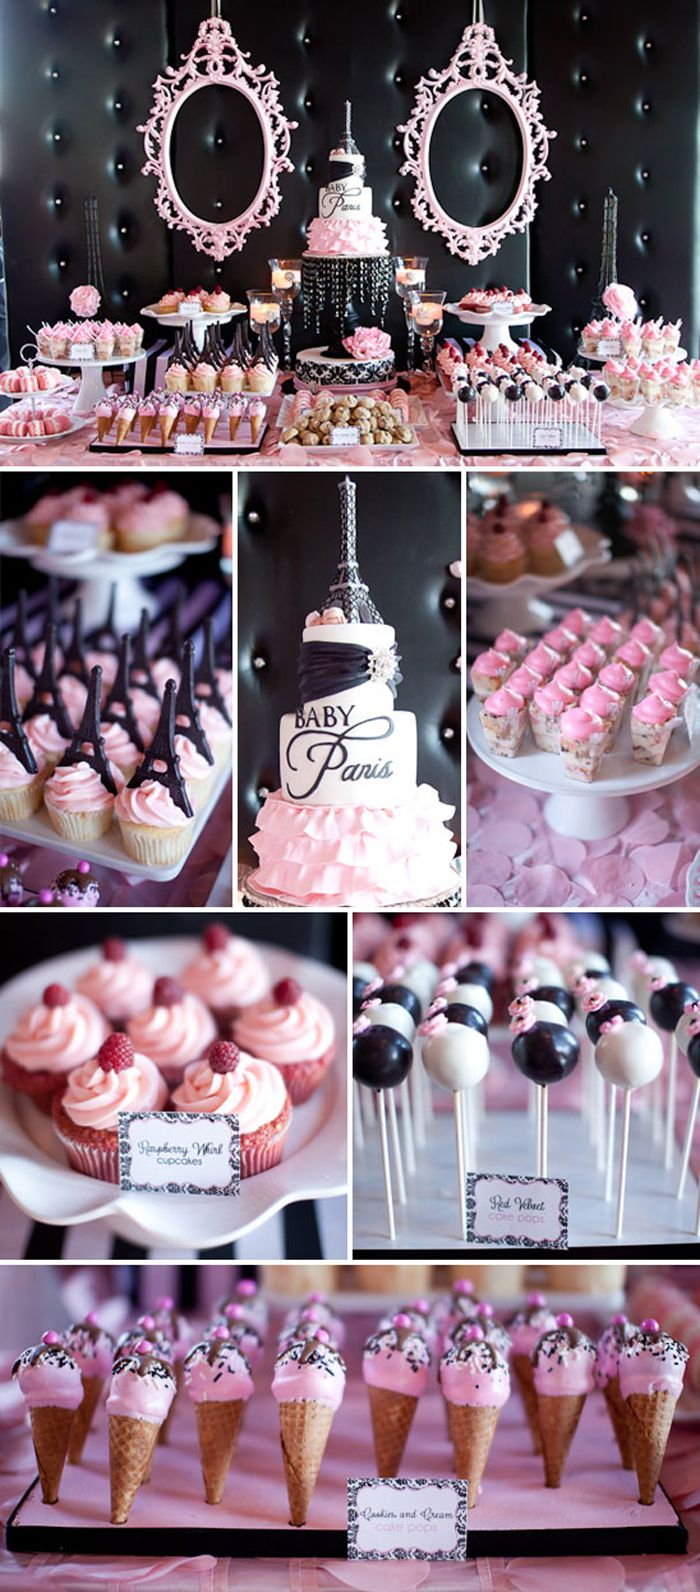 Paris-themed baby shower...would be amazing for MY future bridal shower (w/some adjustments)